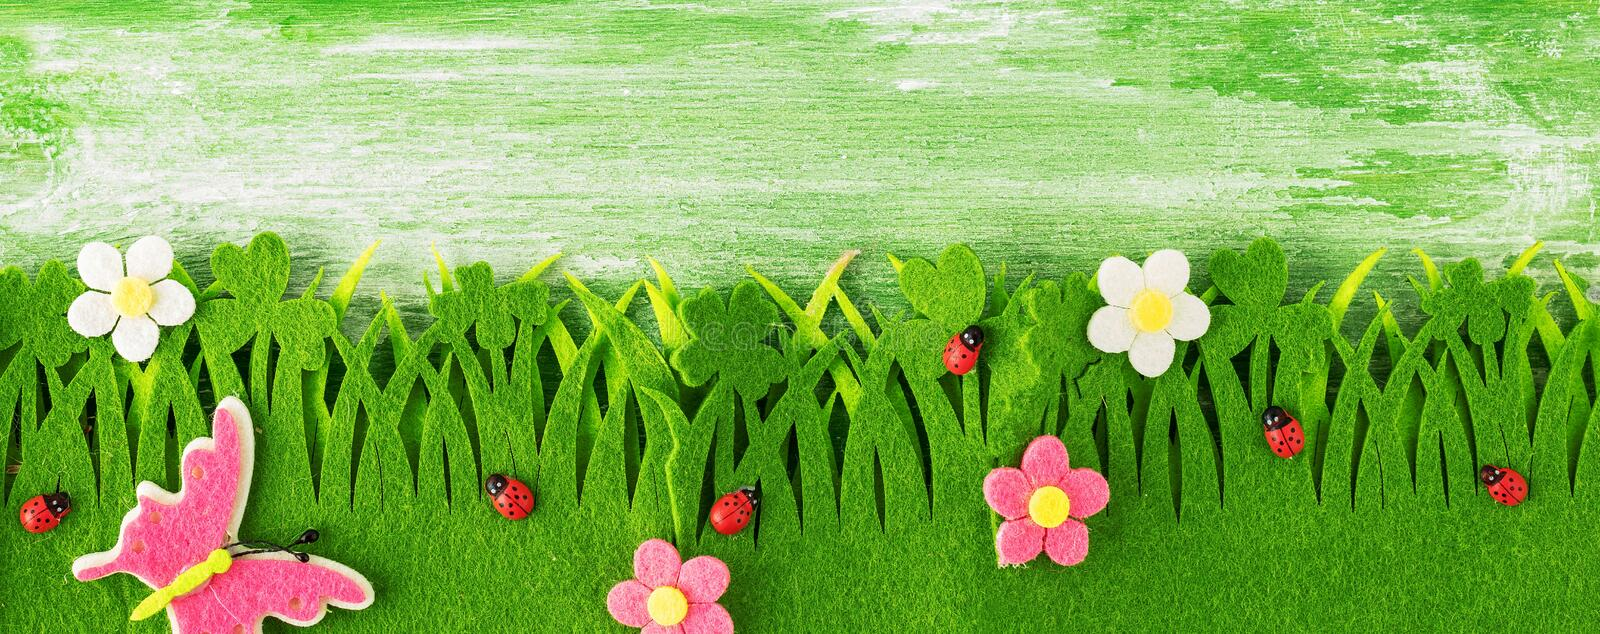 Spring or summer and grass field with wooden background.  stock photos